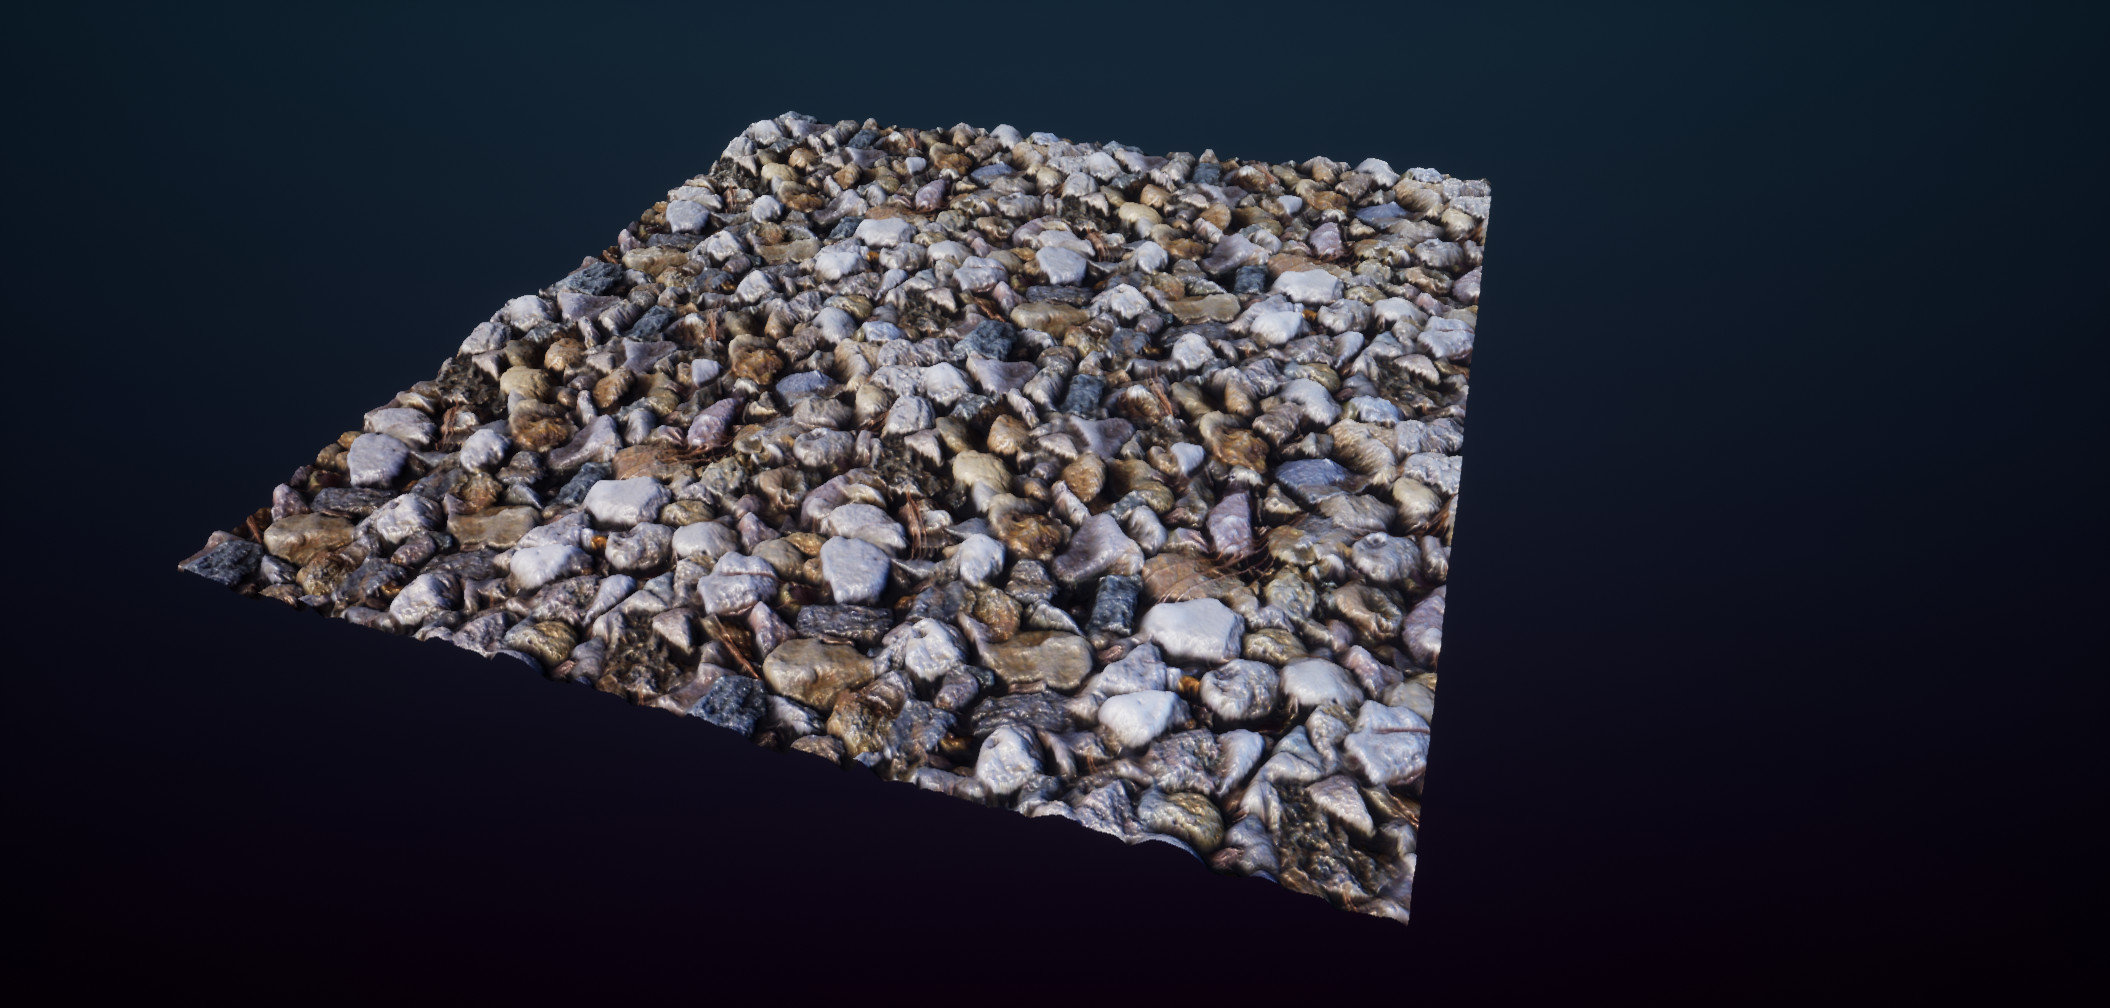 Finished product tiles 2x horizontally and vertically on a high-poly plane